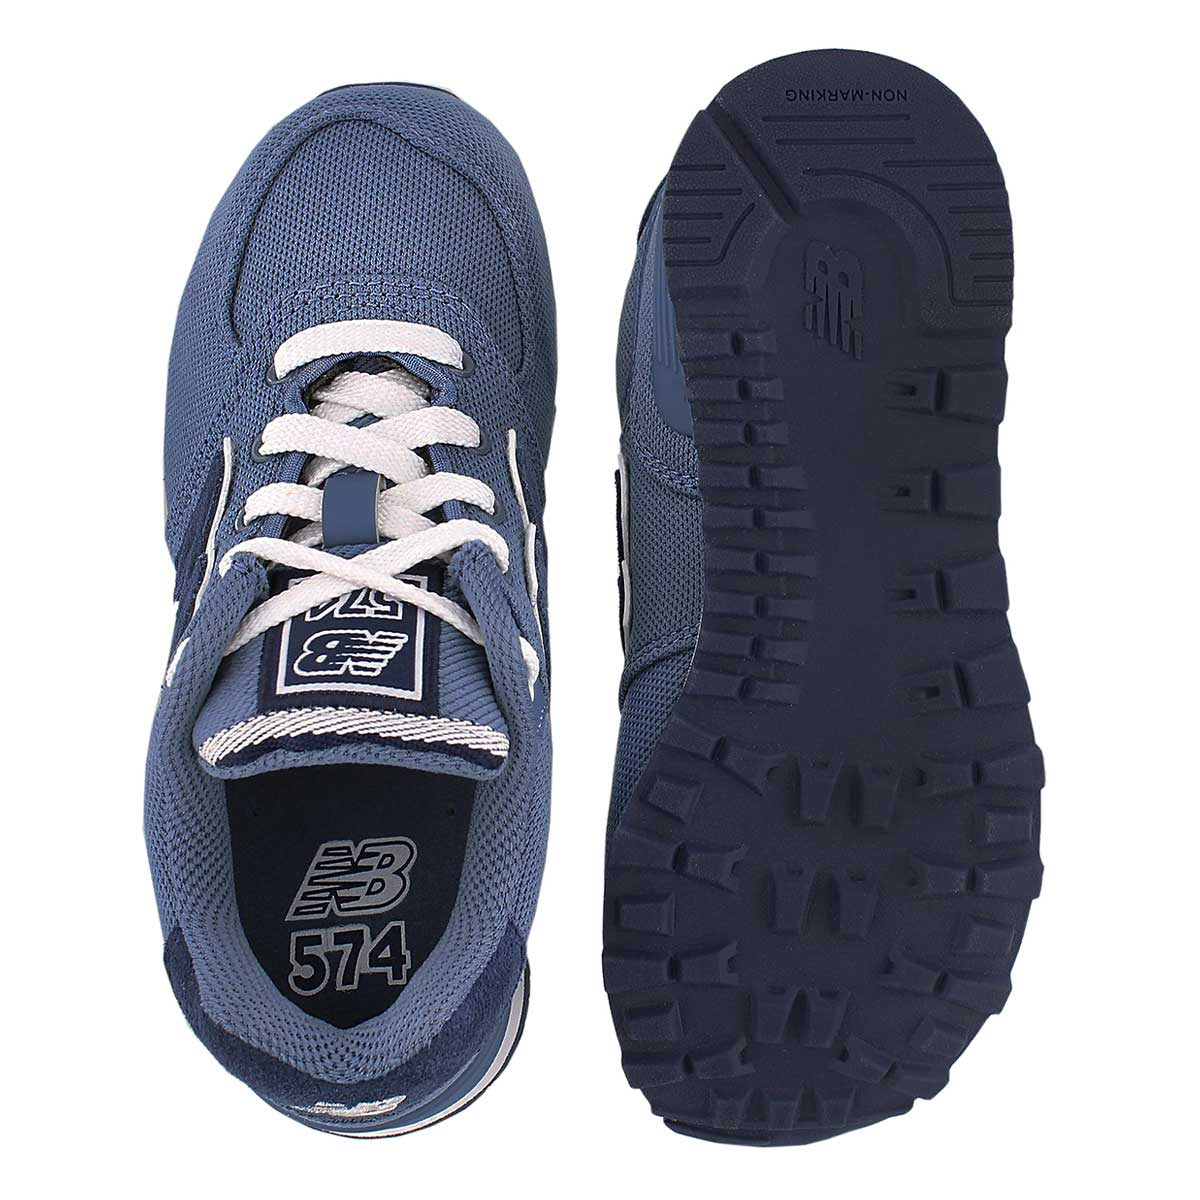 Bys 574 chambray lace up sneaker